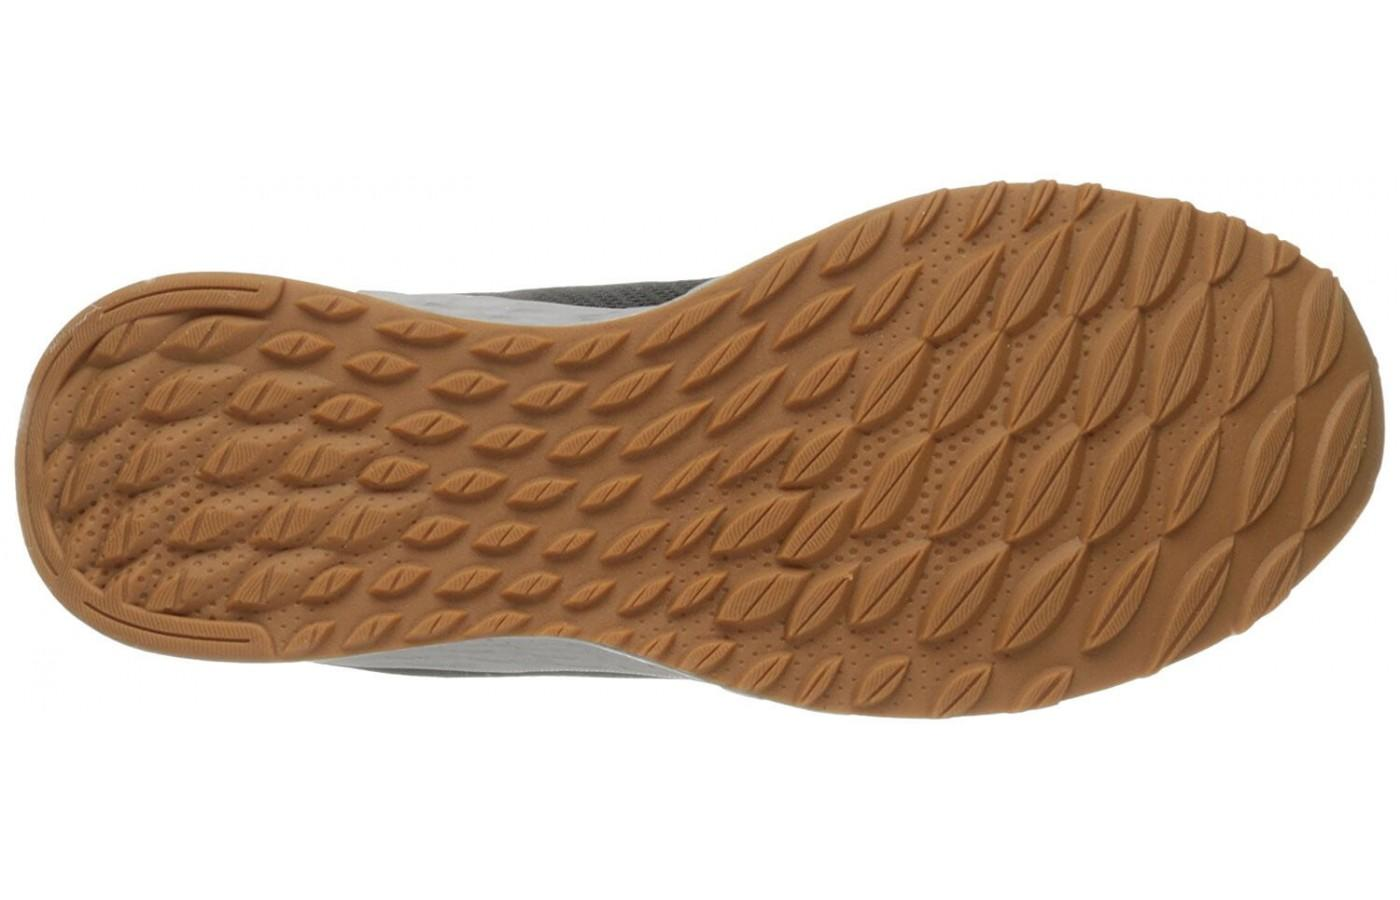 The outsole is made from a durable rubber.